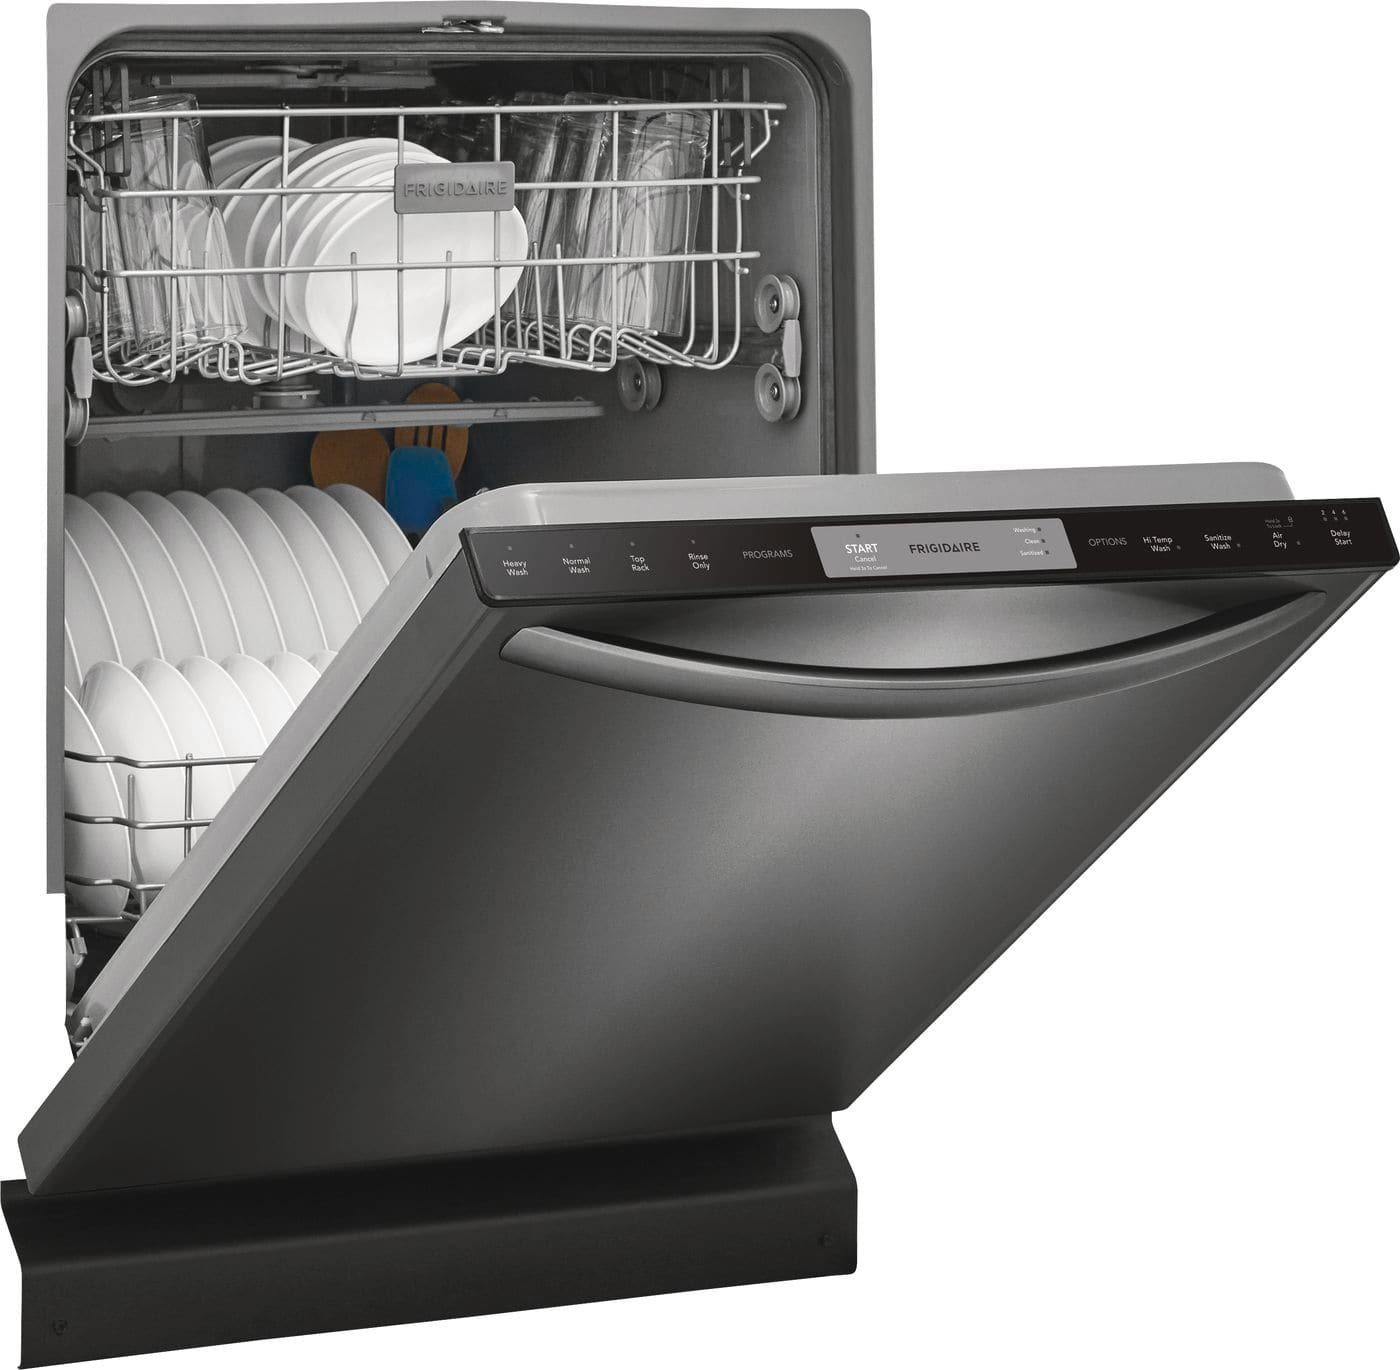 "Model: FFID2426TD | Frigidaire 24"" Built-In Dishwasher"